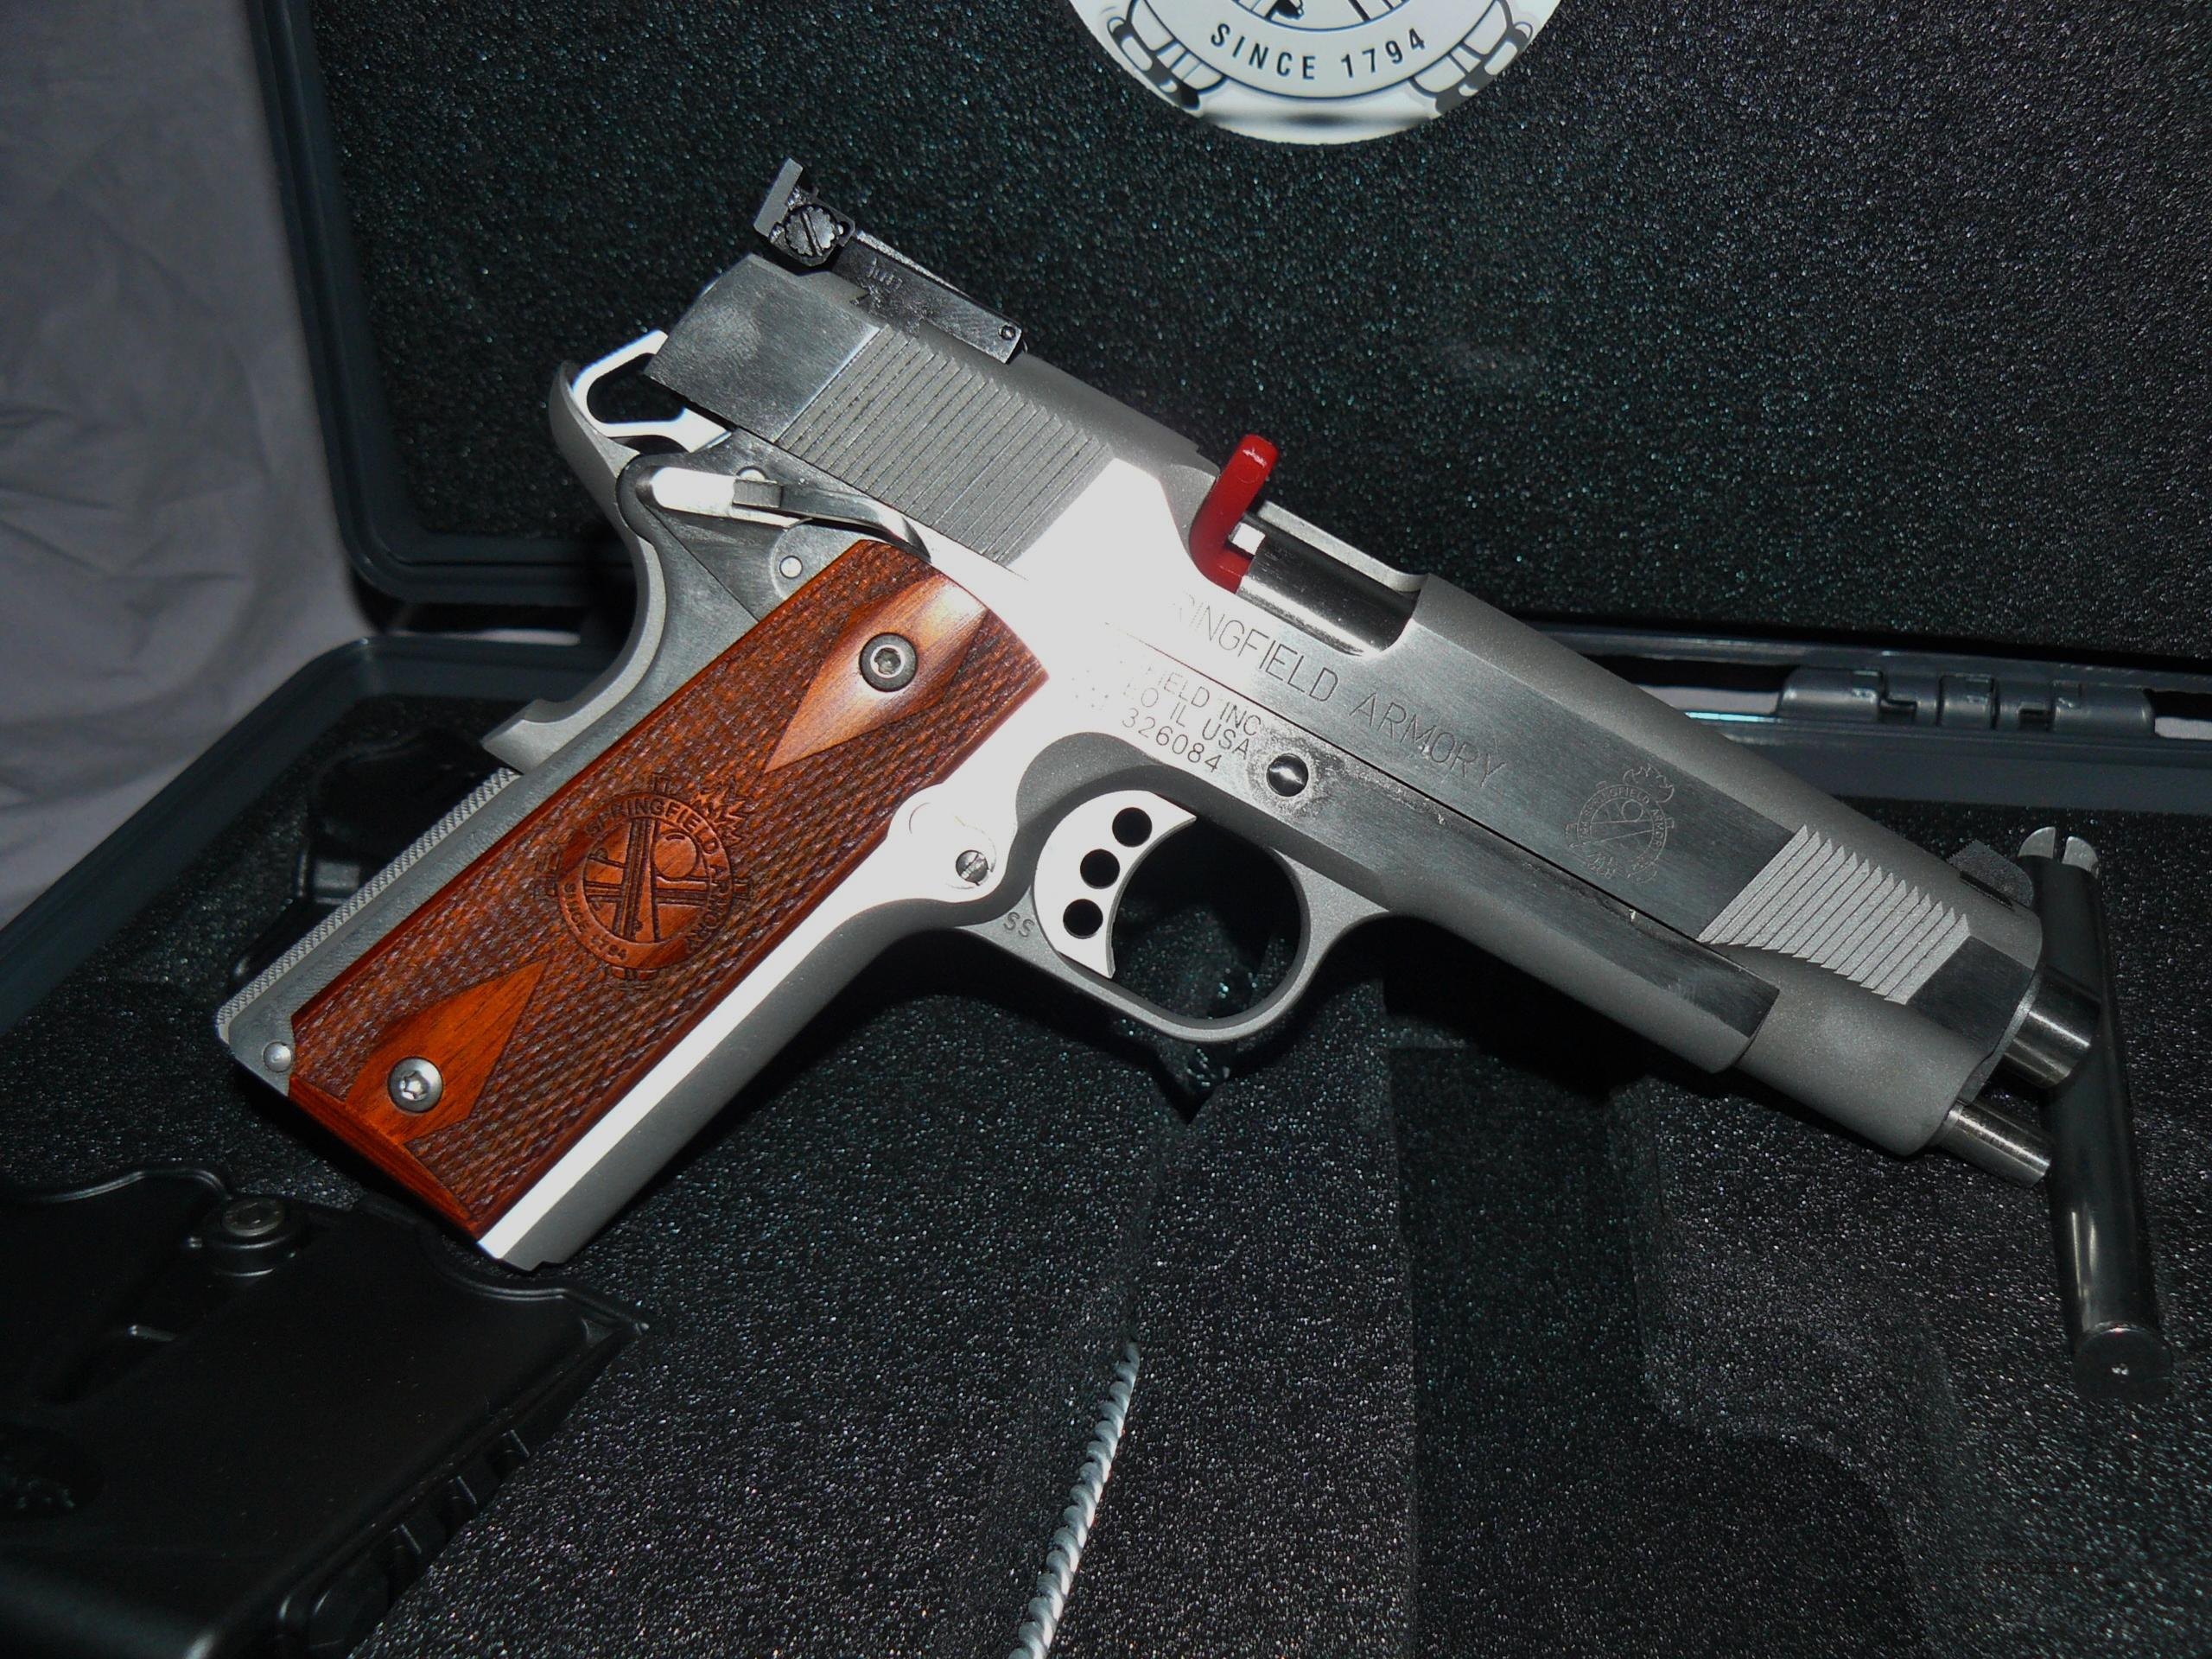 Springfield 1911 SS Target Loaded  Guns > Pistols > Springfield Armory Pistols > 1911 Type